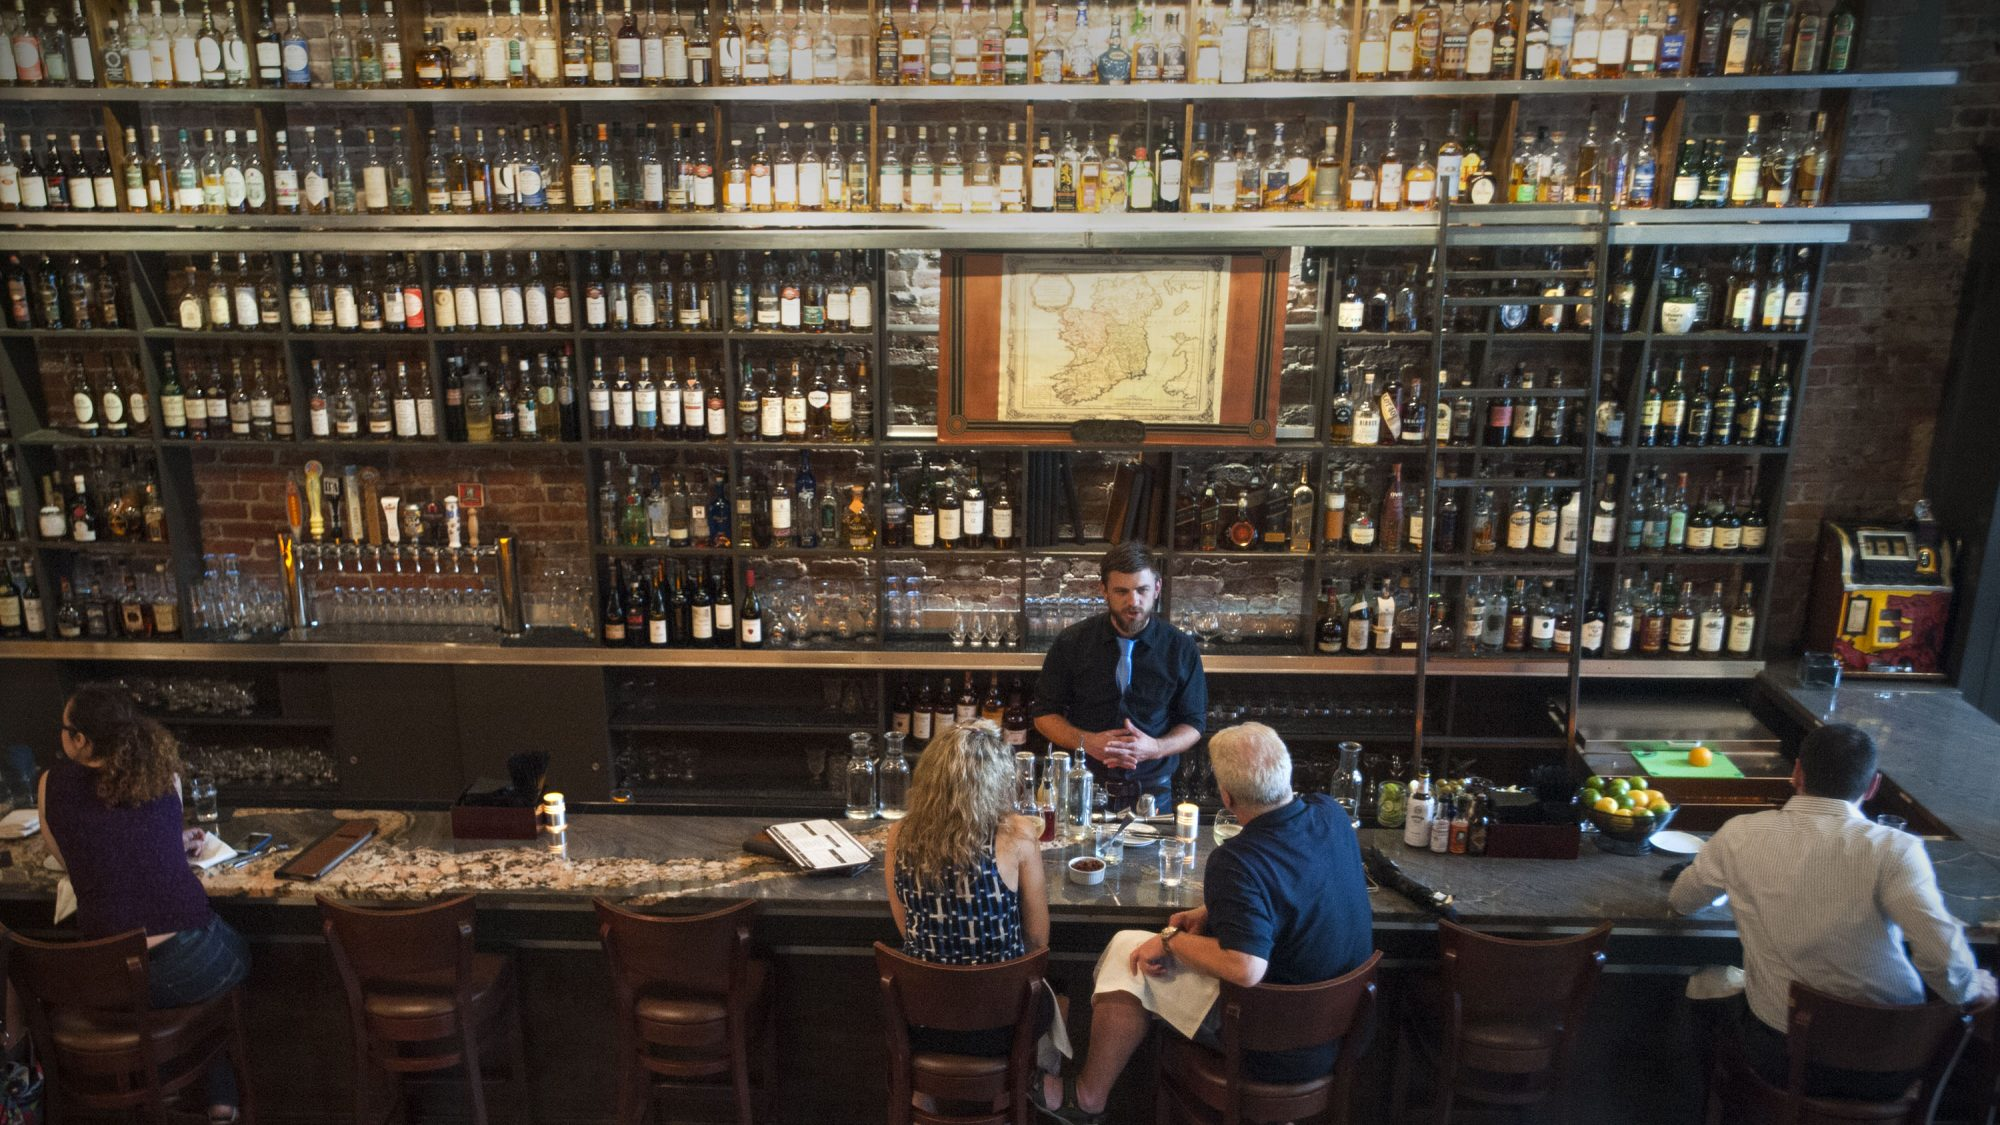 Before the new law was passed, you would have to travel far from the source to places like the Jack Rose Dining Saloon in D.C. to find rare bourbons.